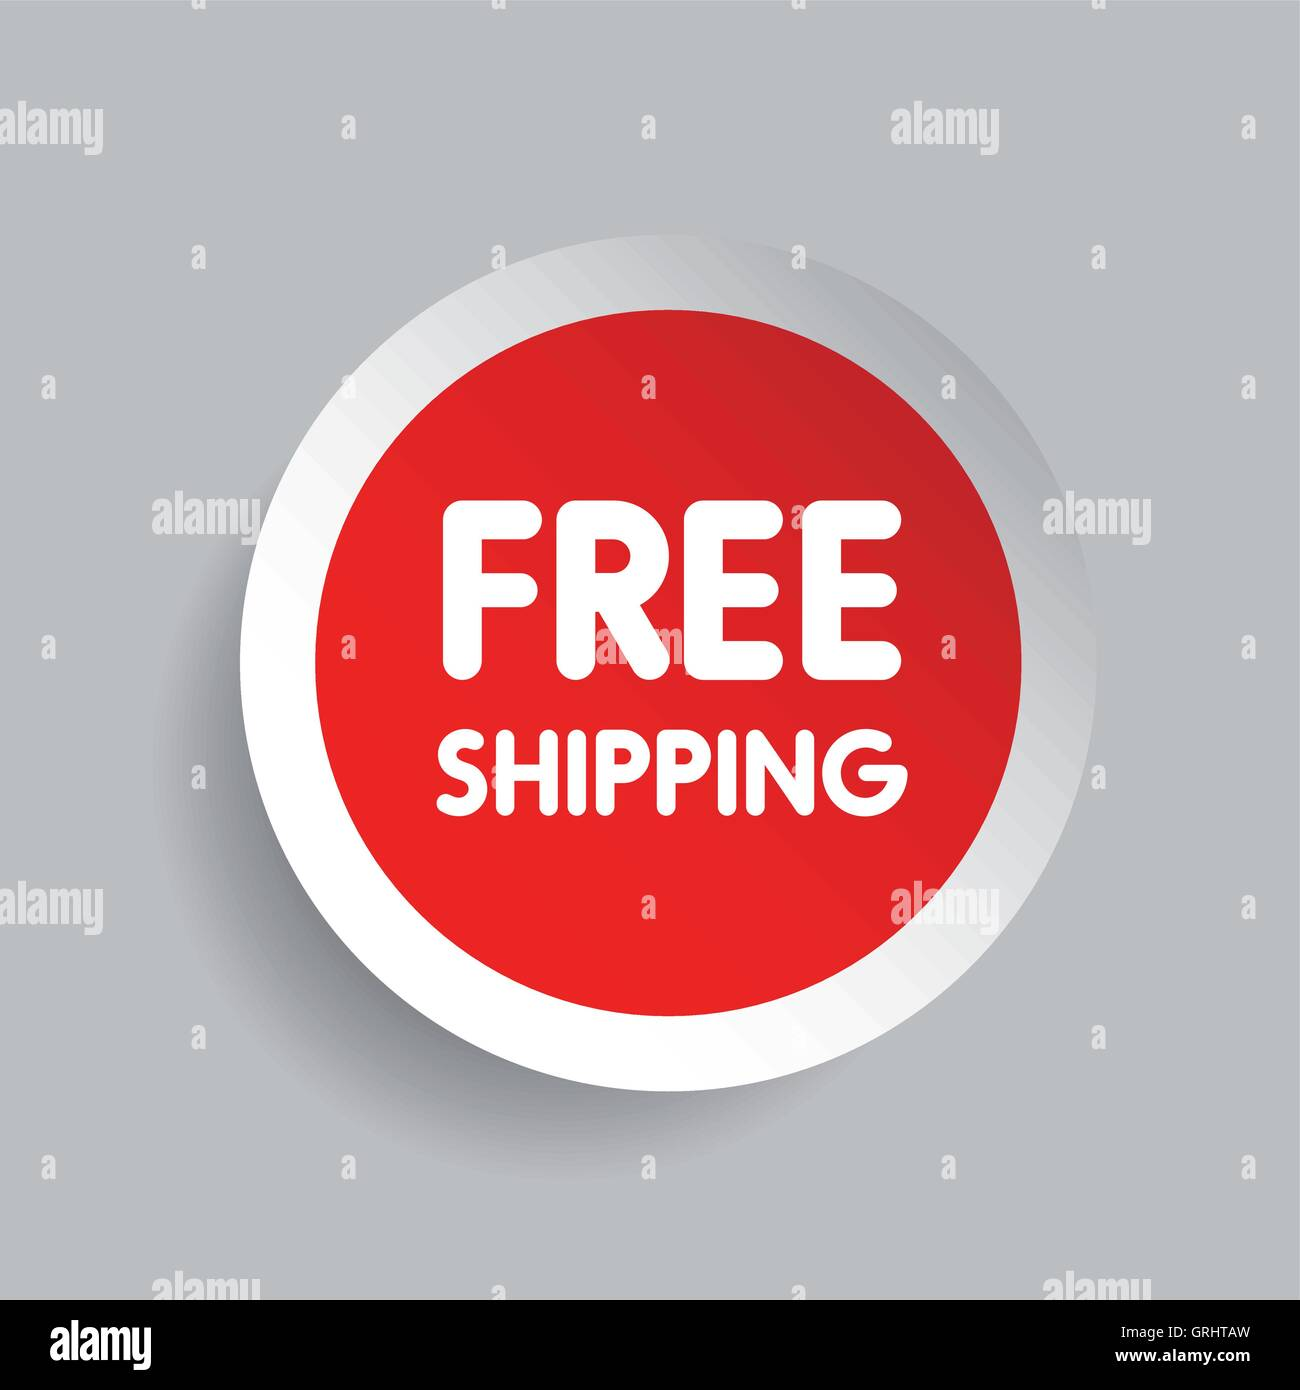 free shipping label vector red stock vector art illustration